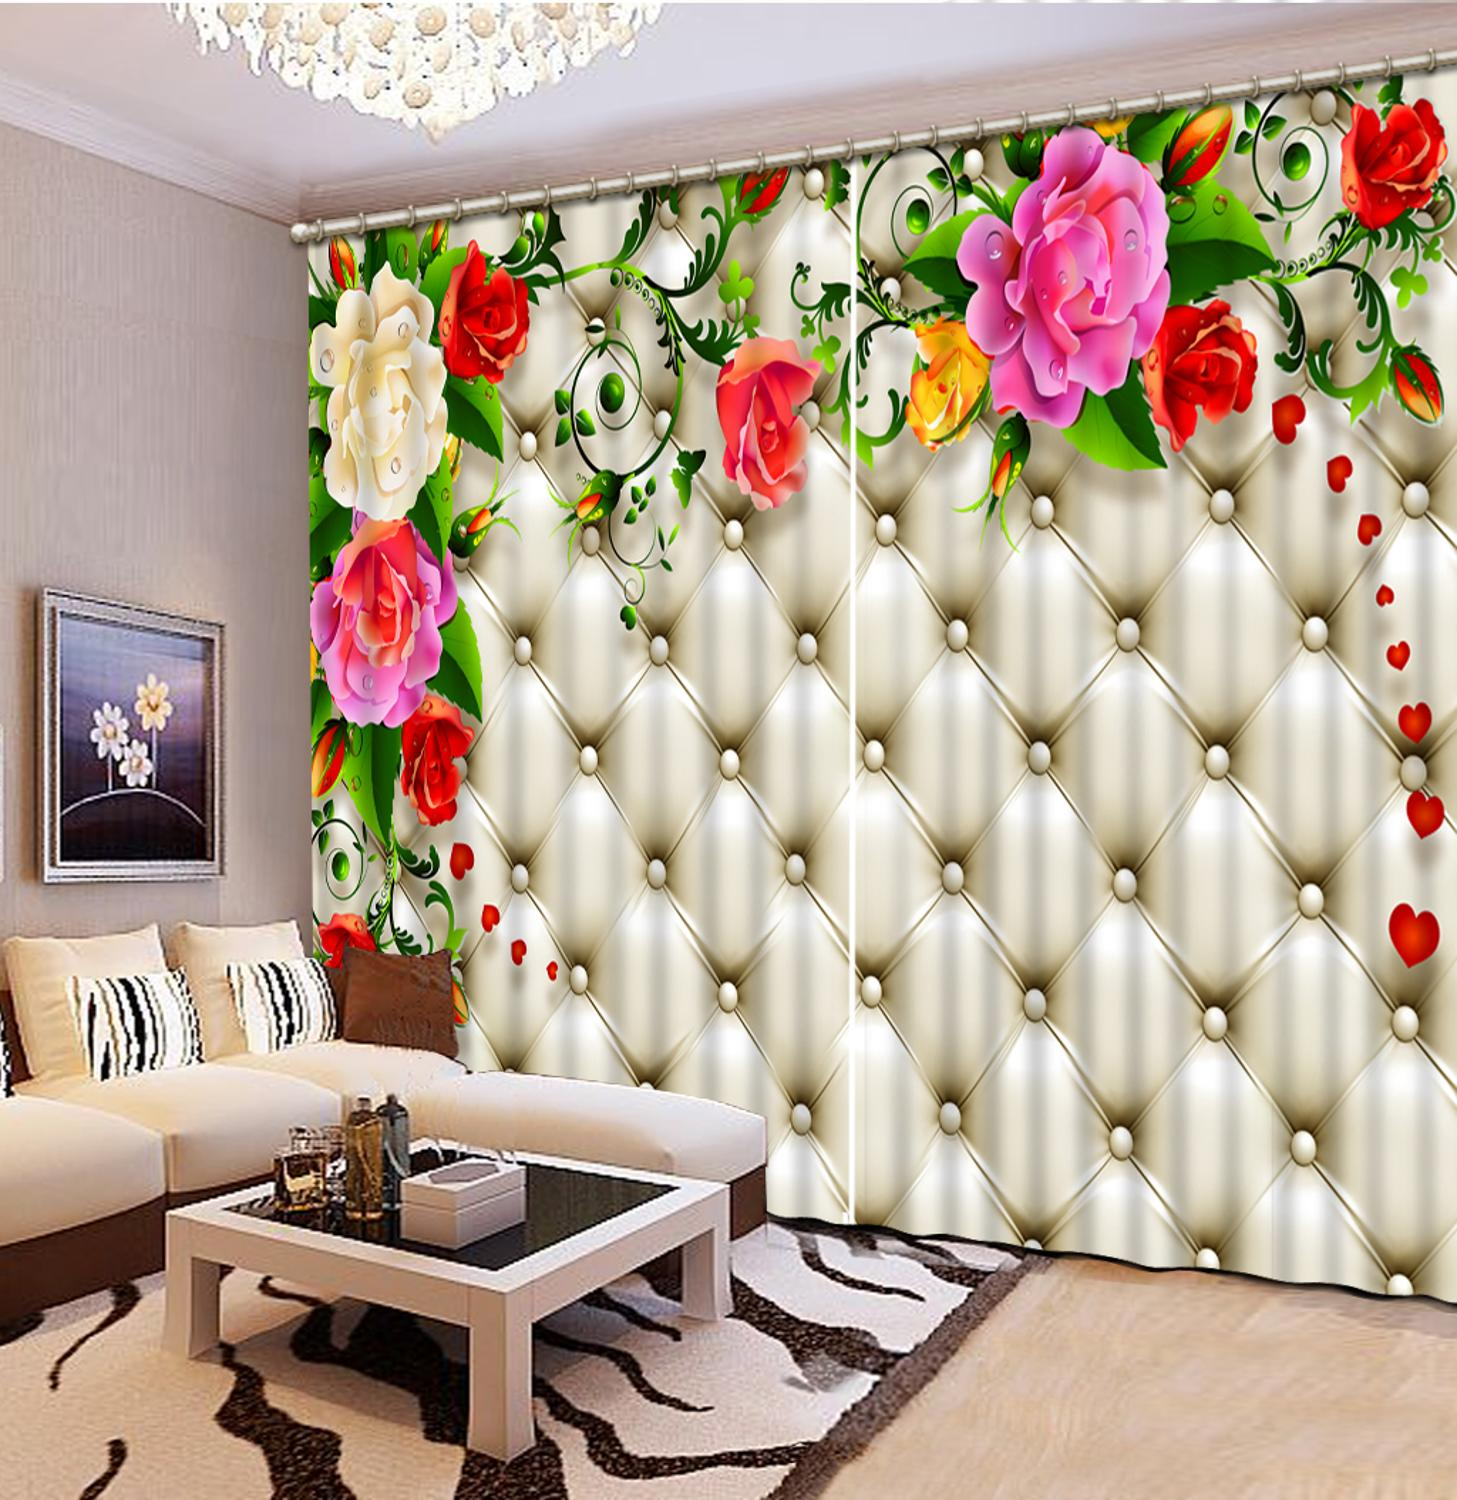 3D Curtain Luxury Blackout Window Curtain Living Room soft rose curtains for wedding room wedding curtains3D Curtain Luxury Blackout Window Curtain Living Room soft rose curtains for wedding room wedding curtains